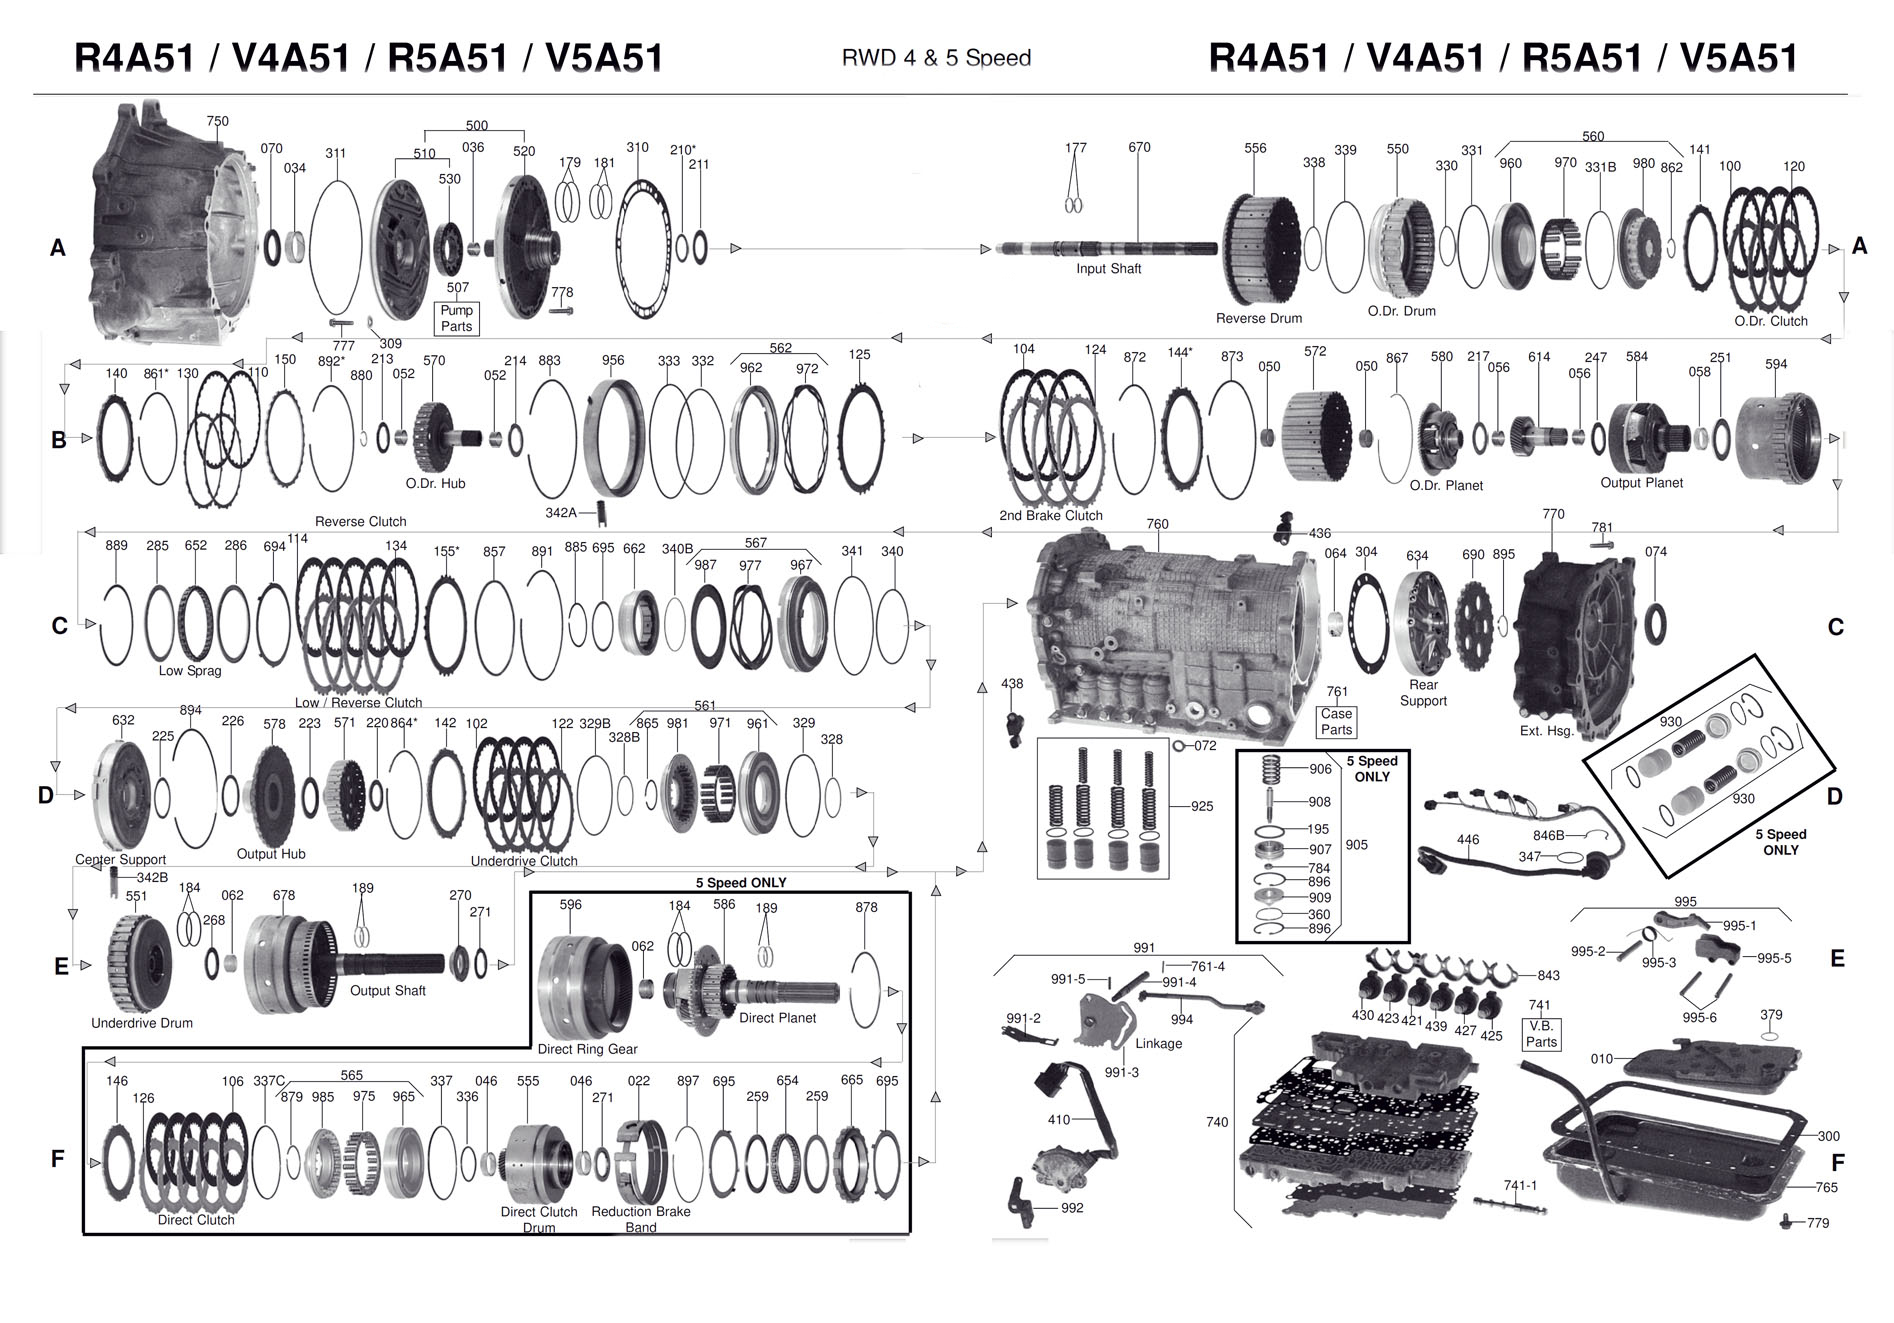 Transmission repair manuals R4A51 / V4A51 / R5A51